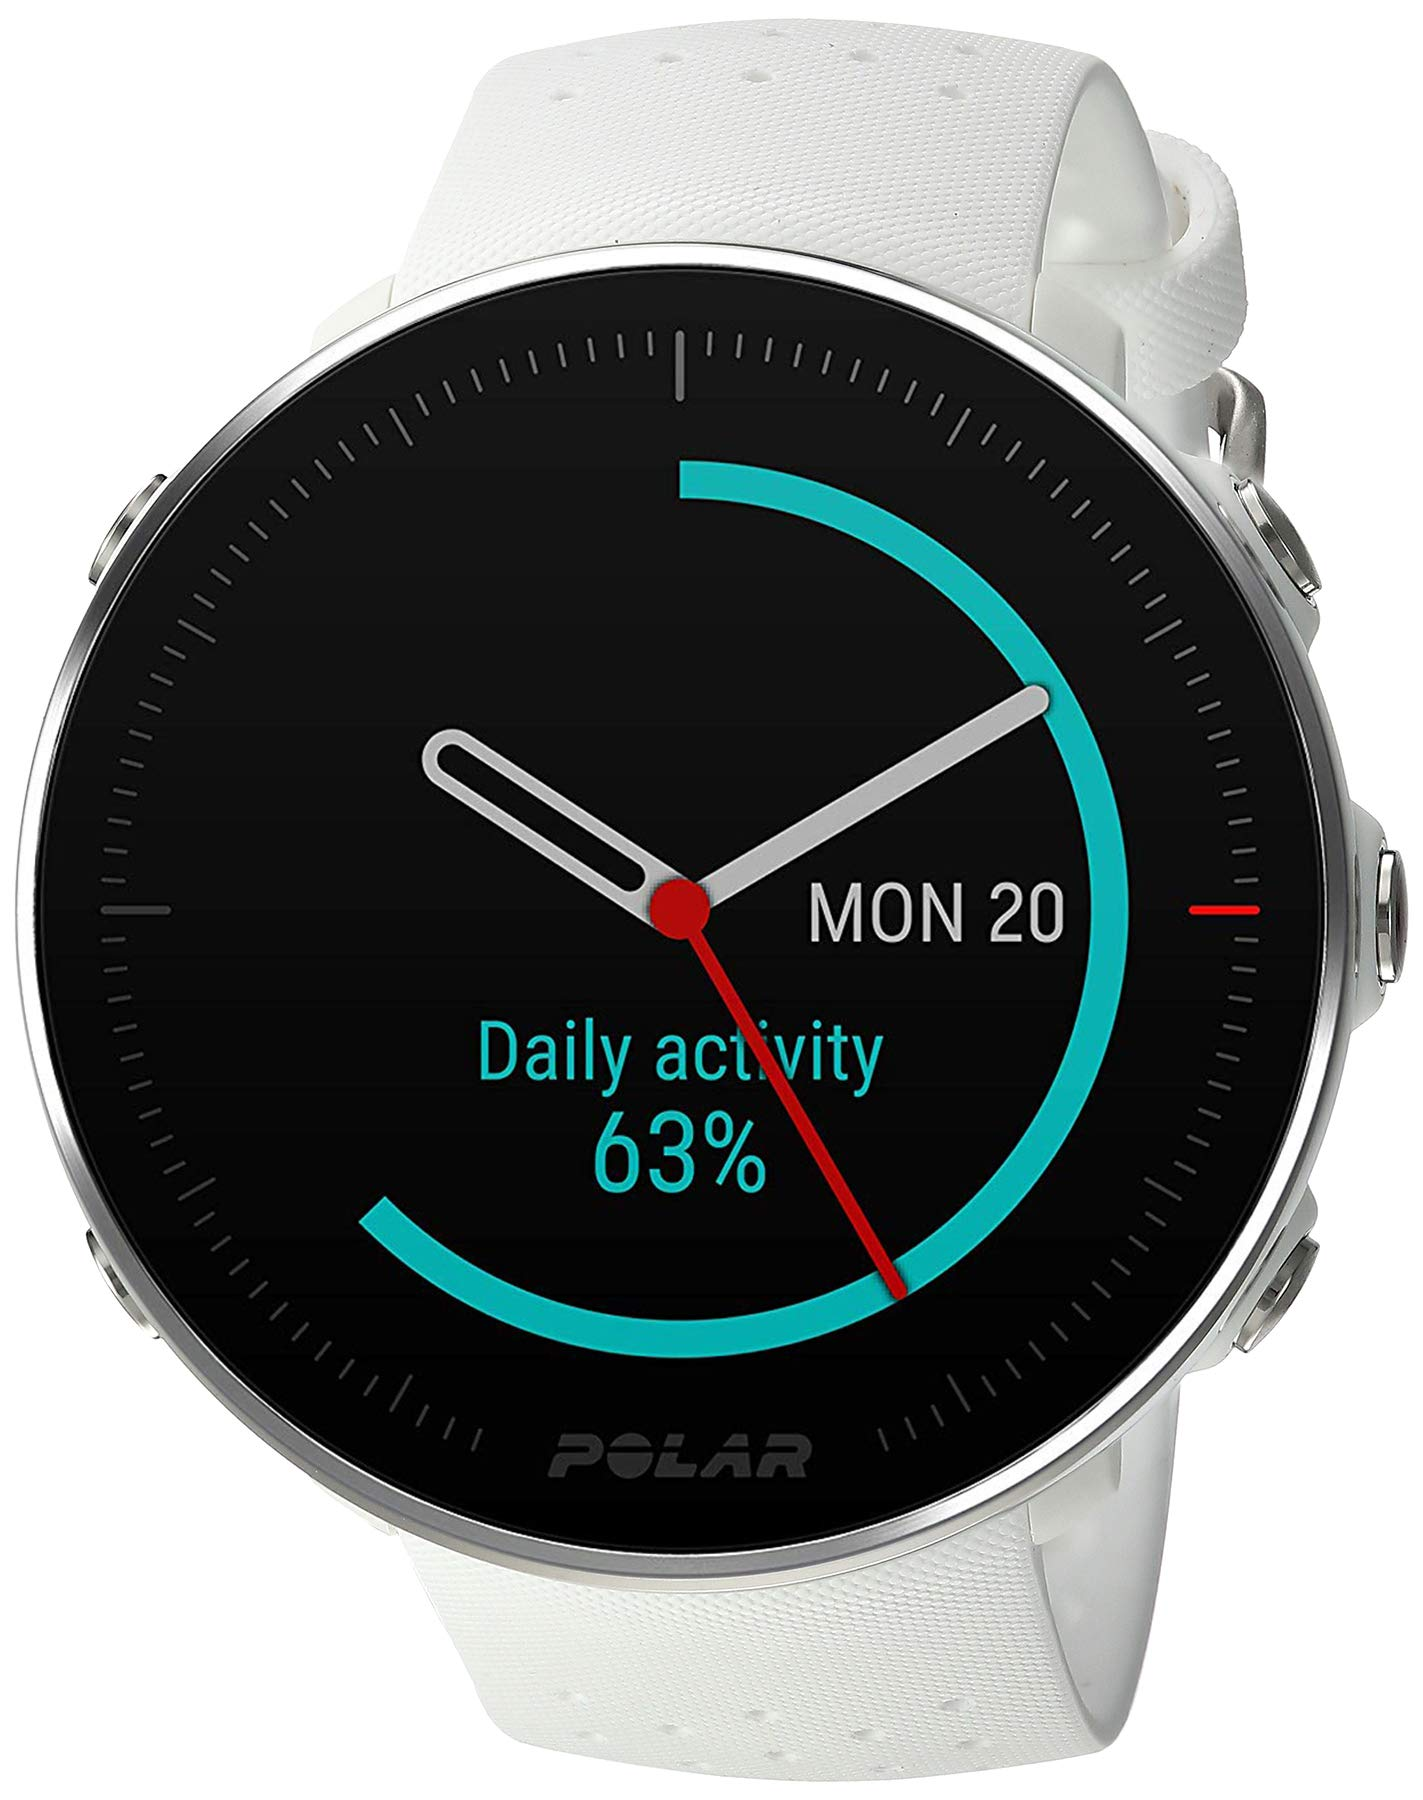 POLAR VANTAGE M -Advanced Running & Multisport Watch with GPS and Wrist-based Heart Rate (Lightweight Design & Latest Technology), White, Small